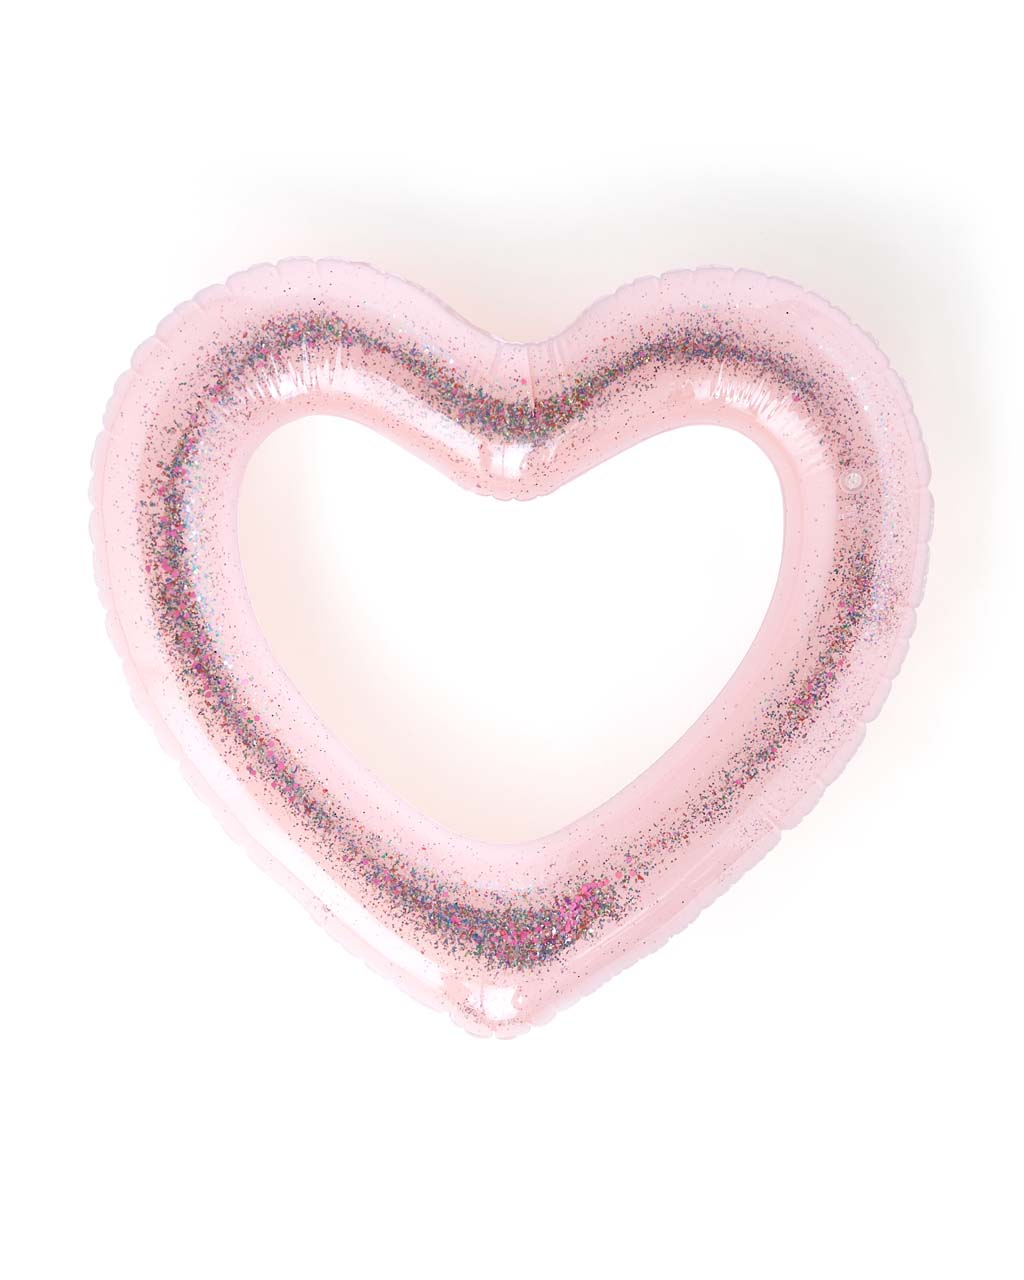 This jumbo heart-shaped innertube comes in heavyweight pink vinyl.